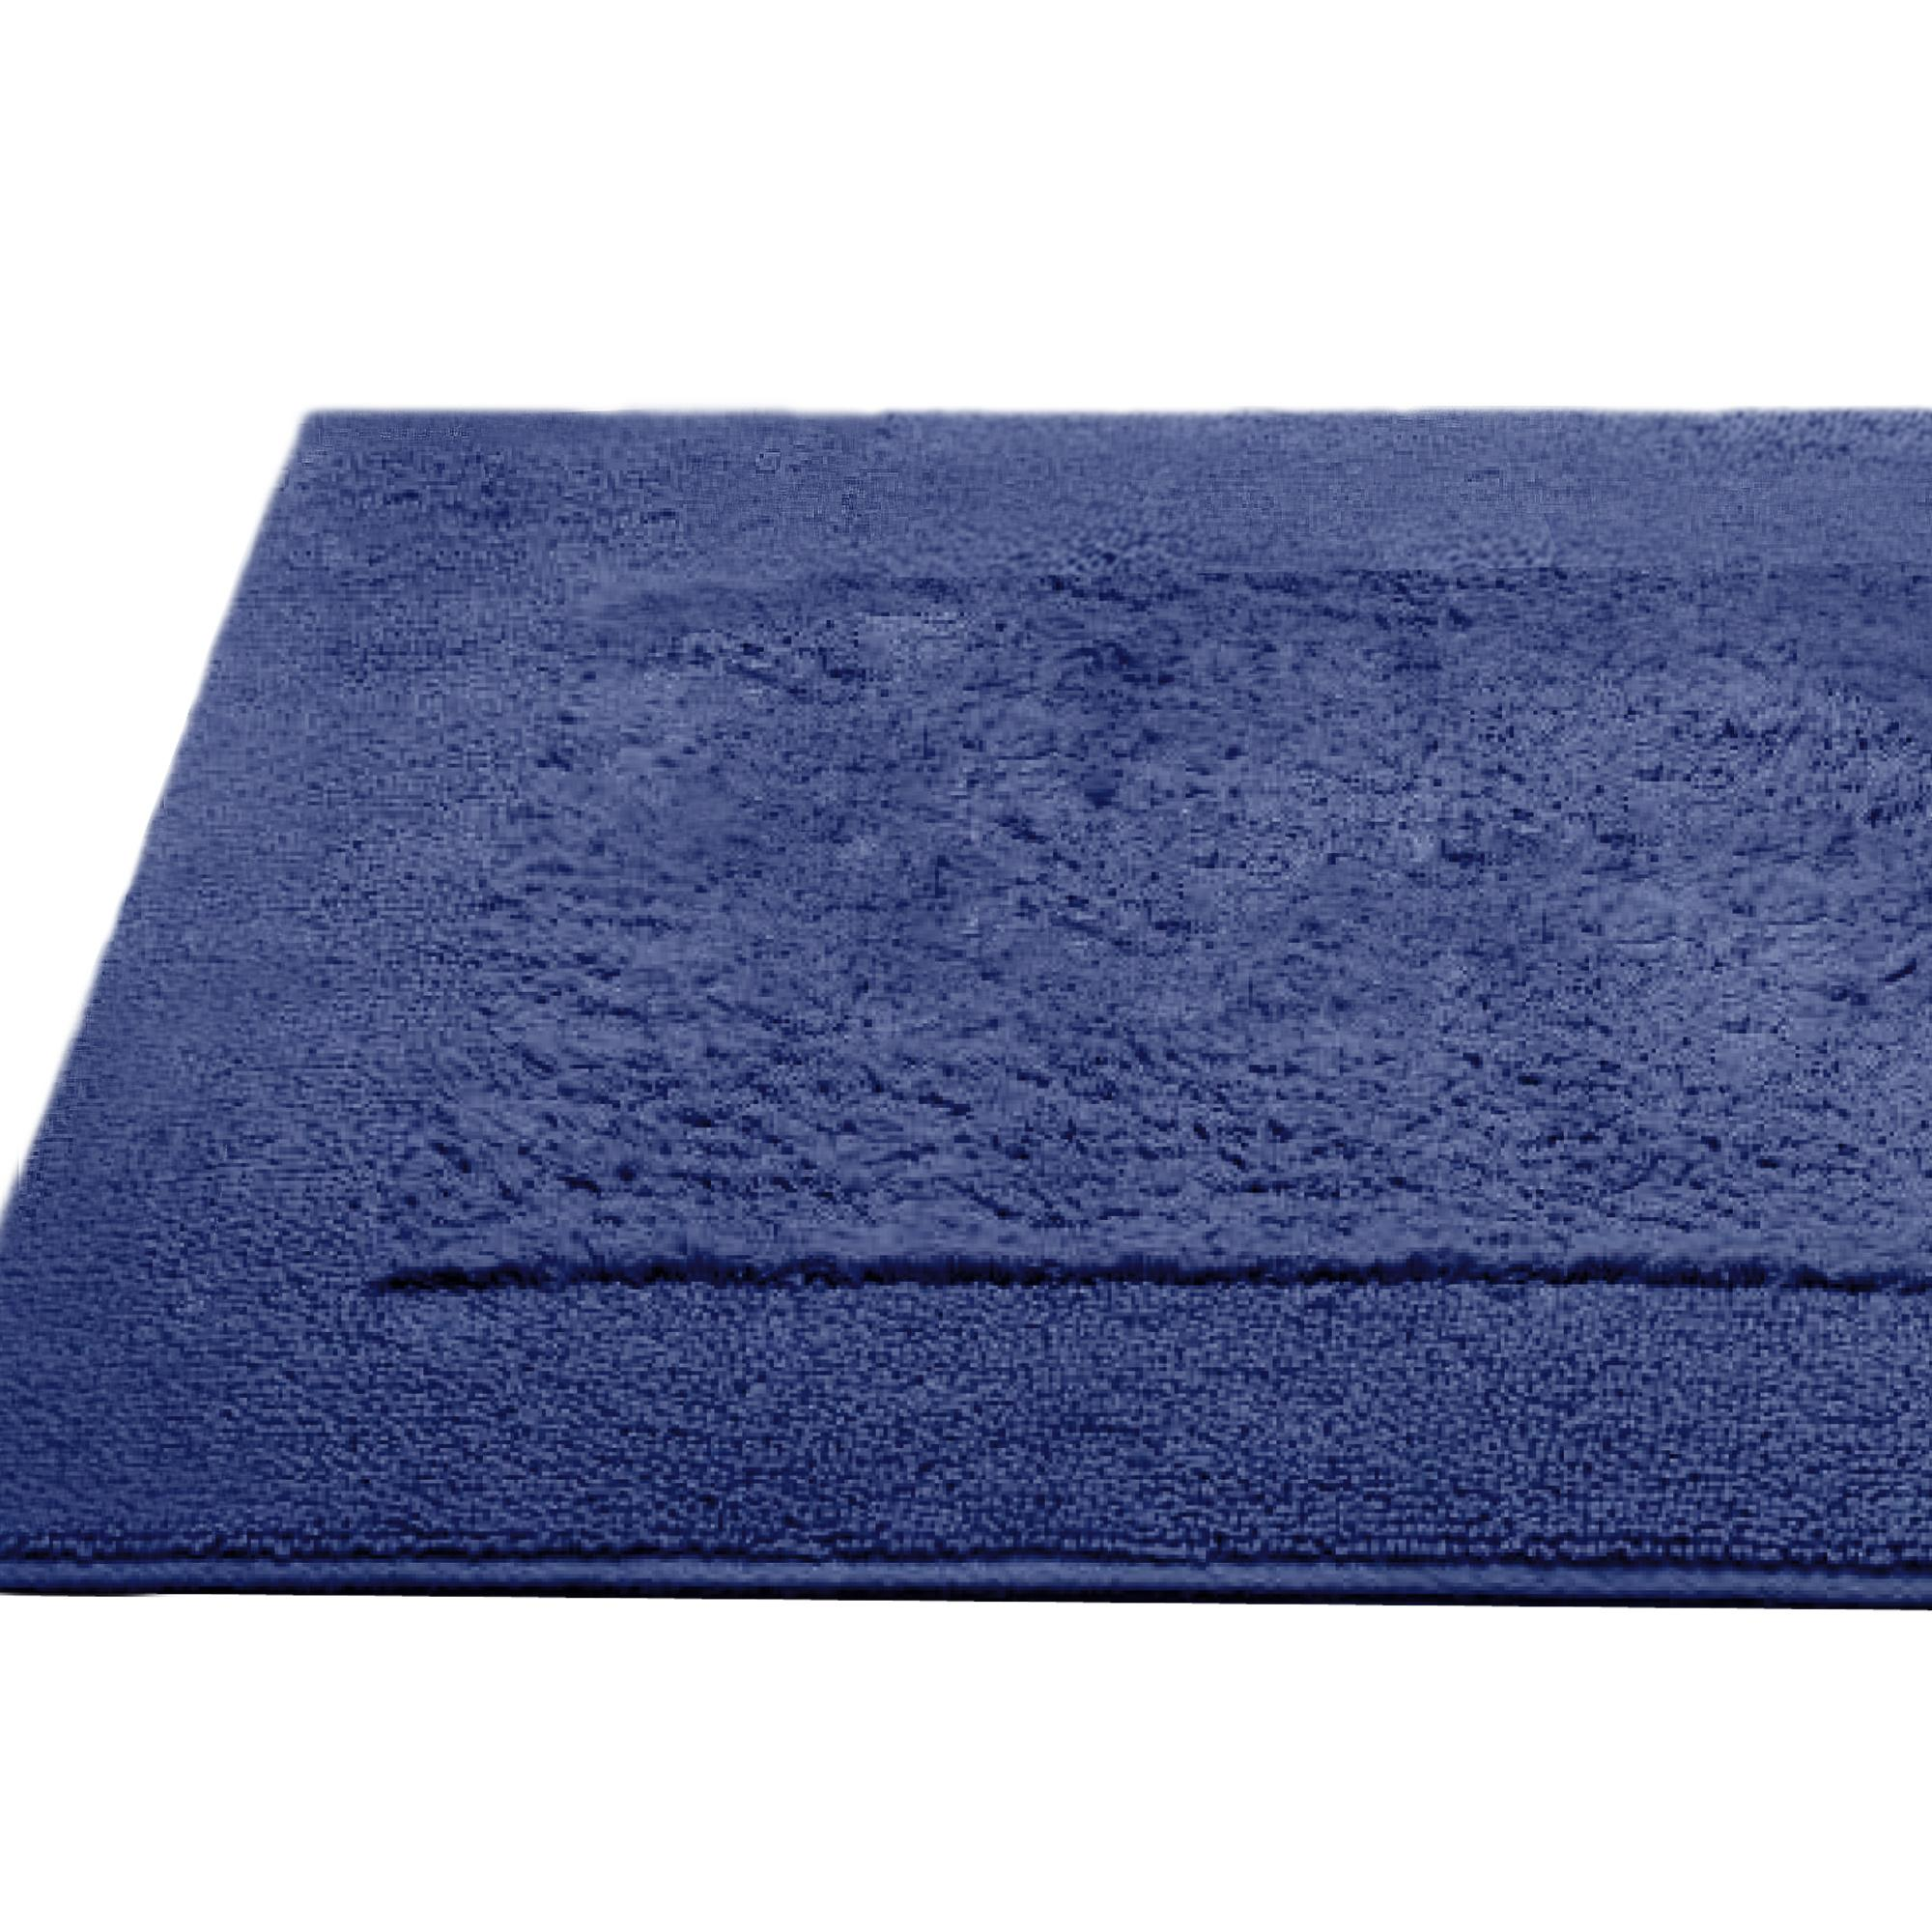 tapis de bain 60x60cm coton uni dream bleu royal linnea linge de maison et. Black Bedroom Furniture Sets. Home Design Ideas